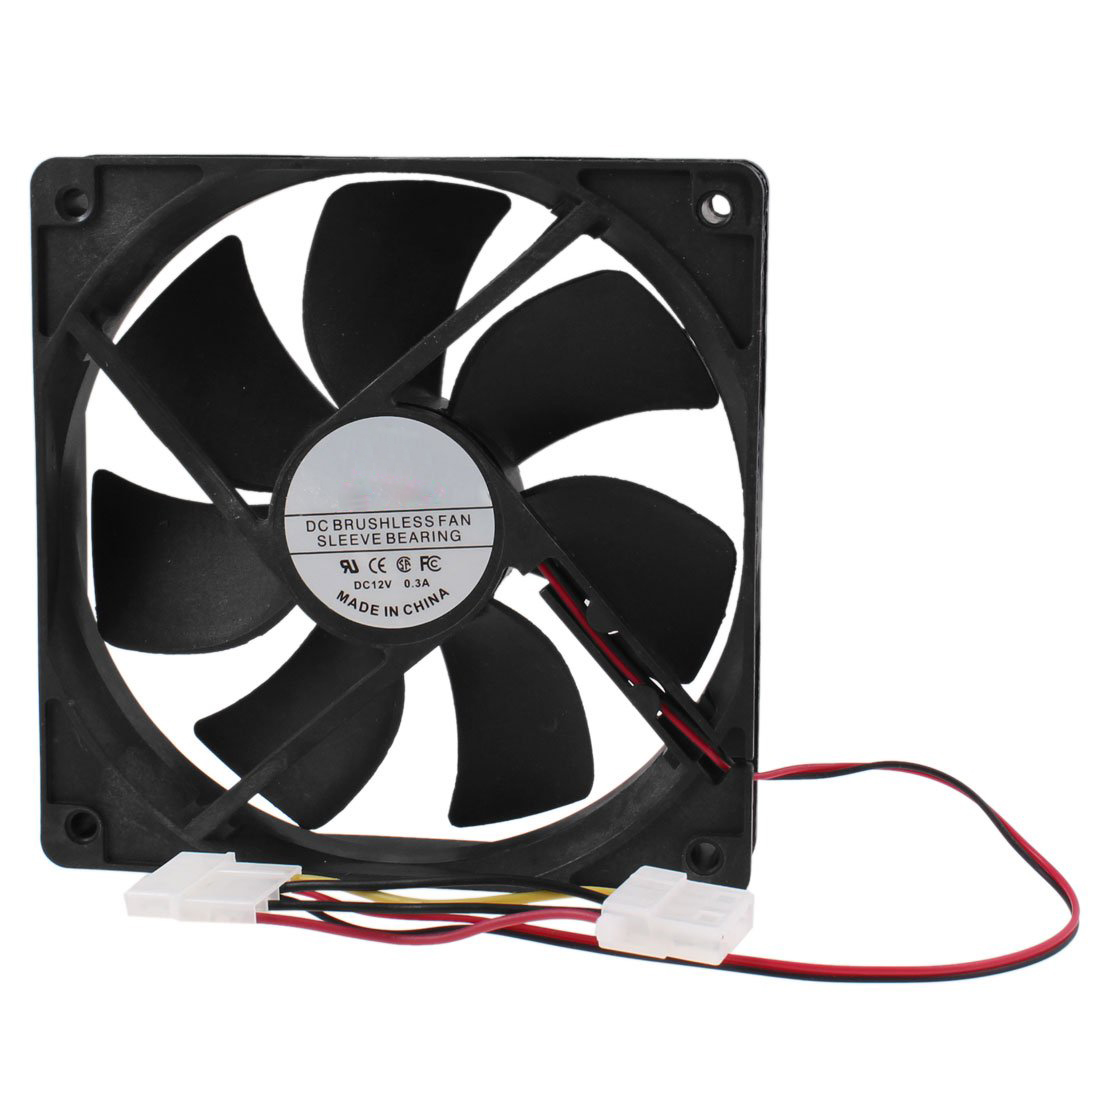 PC Brushless DC Cooling Fan 4 Pin Connector 7 Blades 12V 12cm 120mm 5010s dc 12v 0 1a brushless cooling fan 4 2cm diameter href